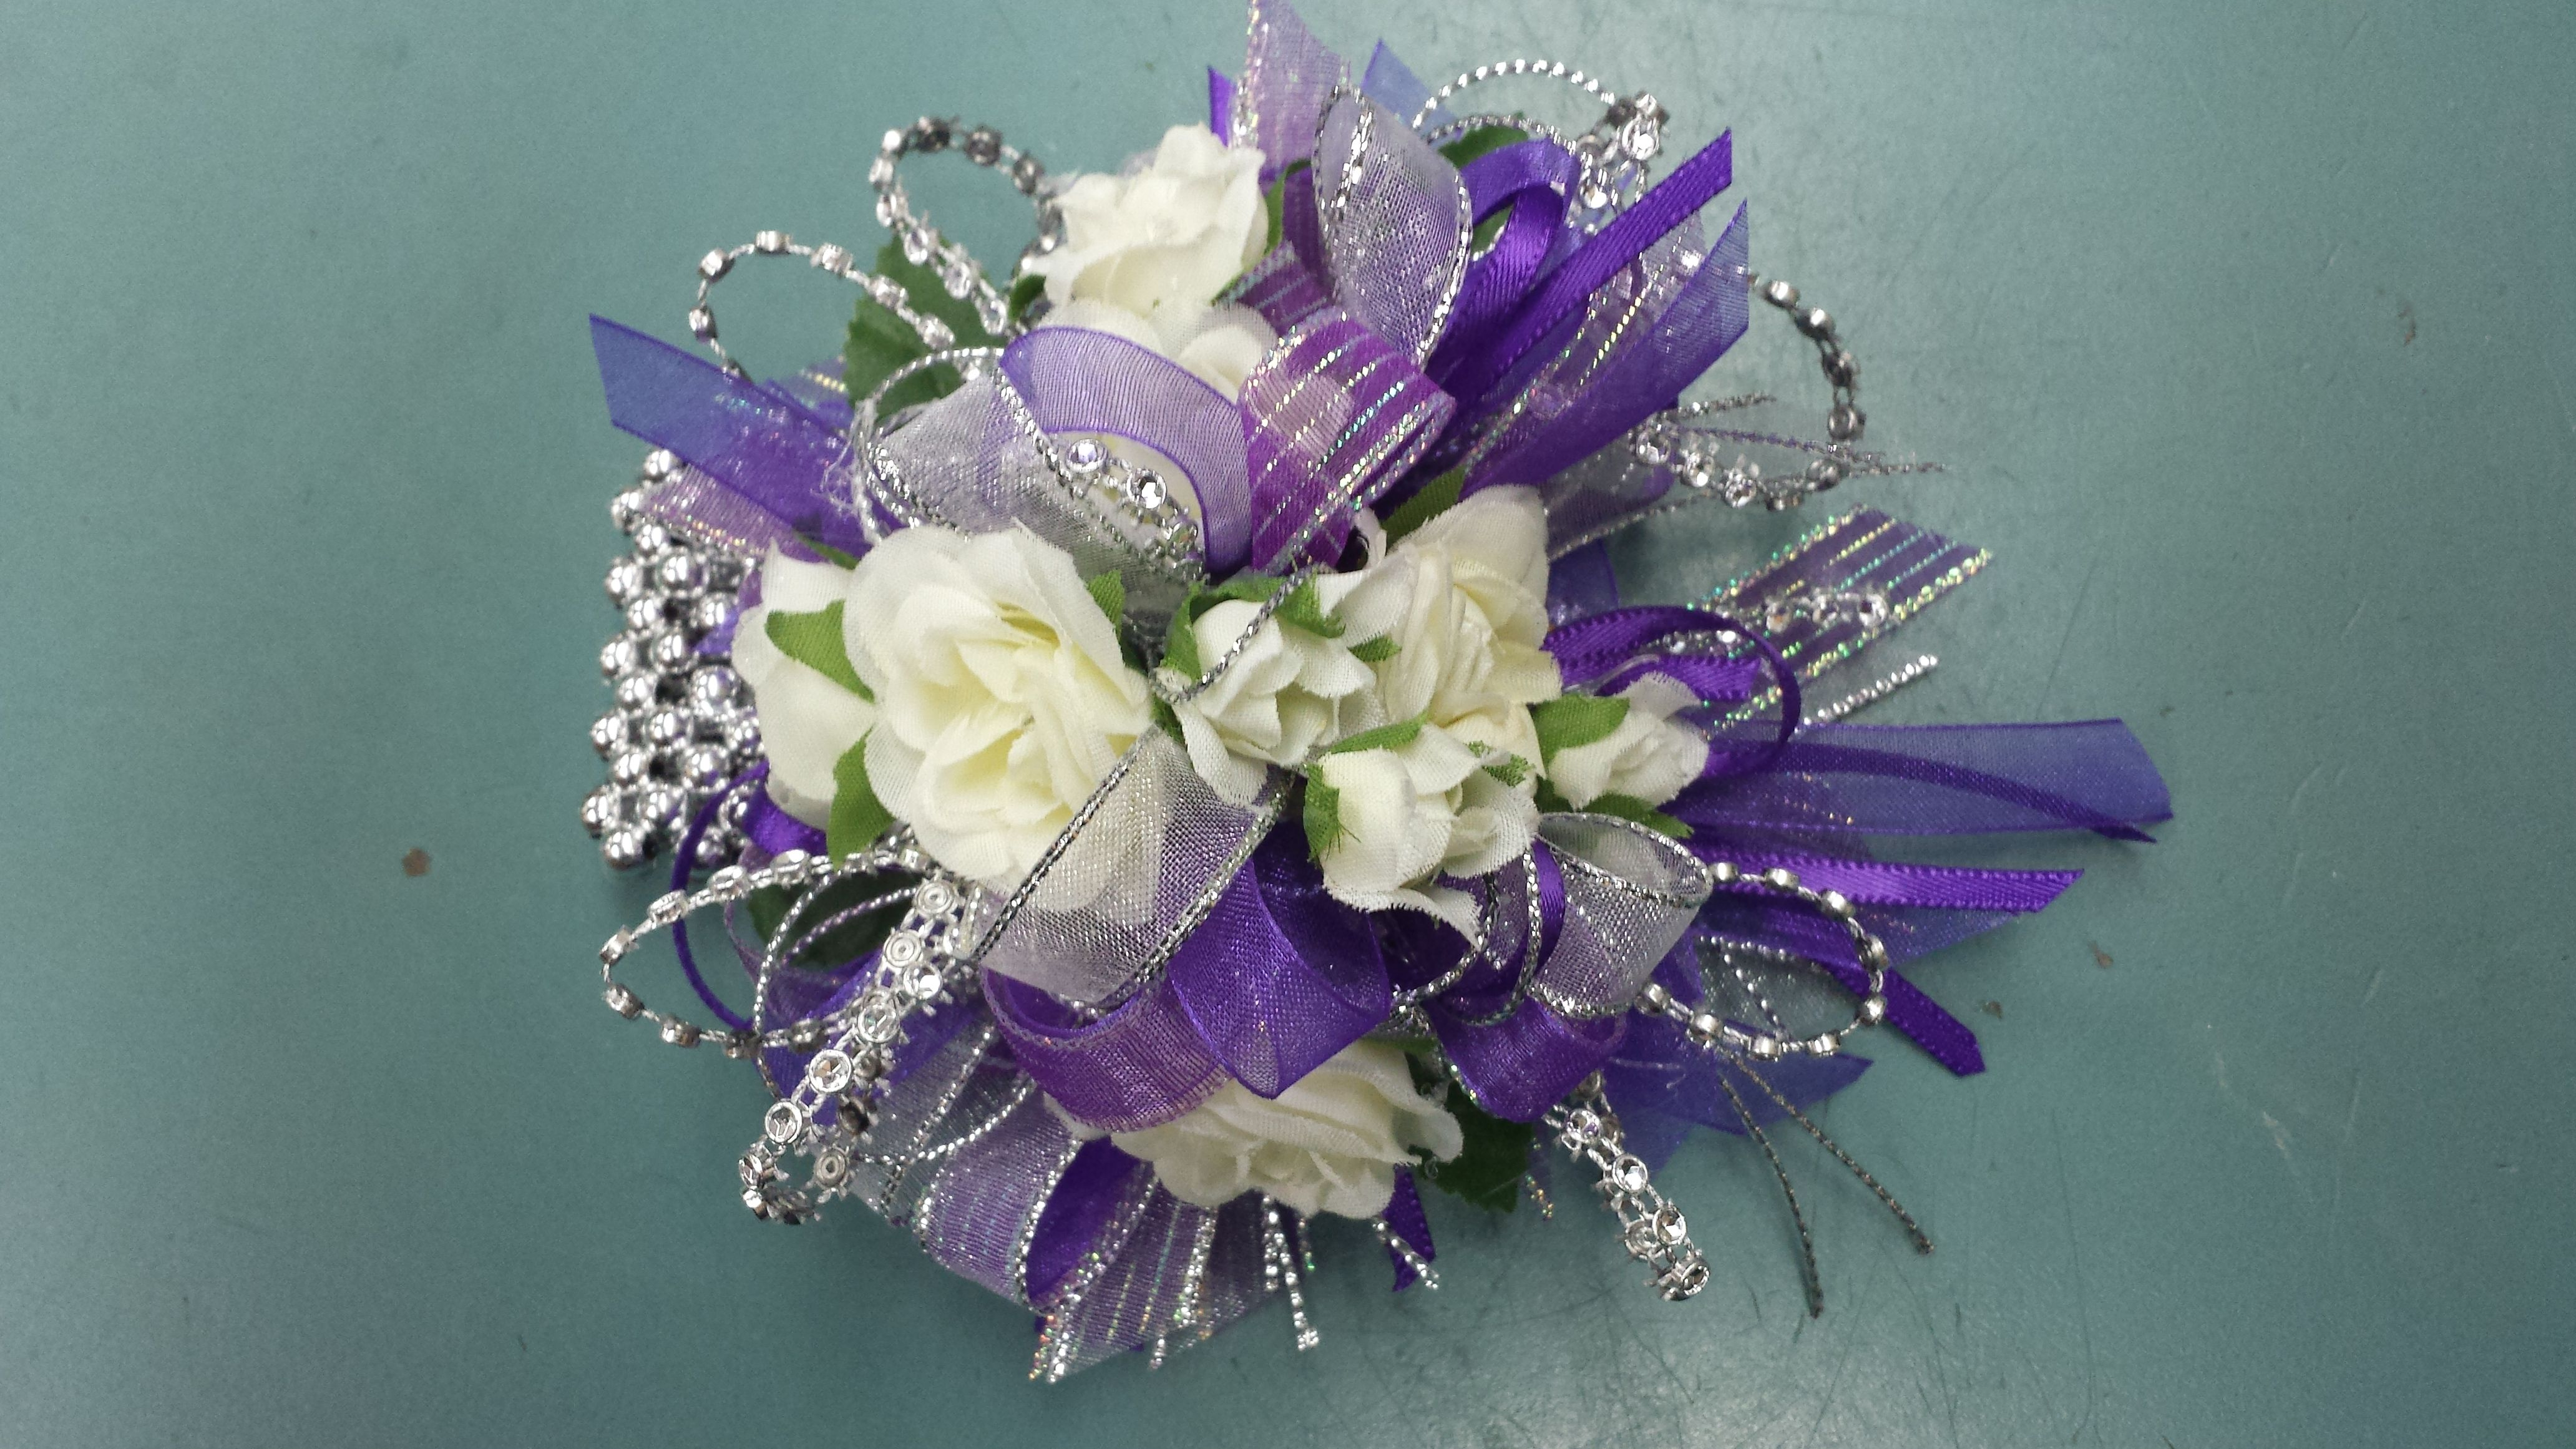 Wrist Corsage from Gallery Florist and Gifts, Mebane, NC. www.galleryfloristandgifts.com